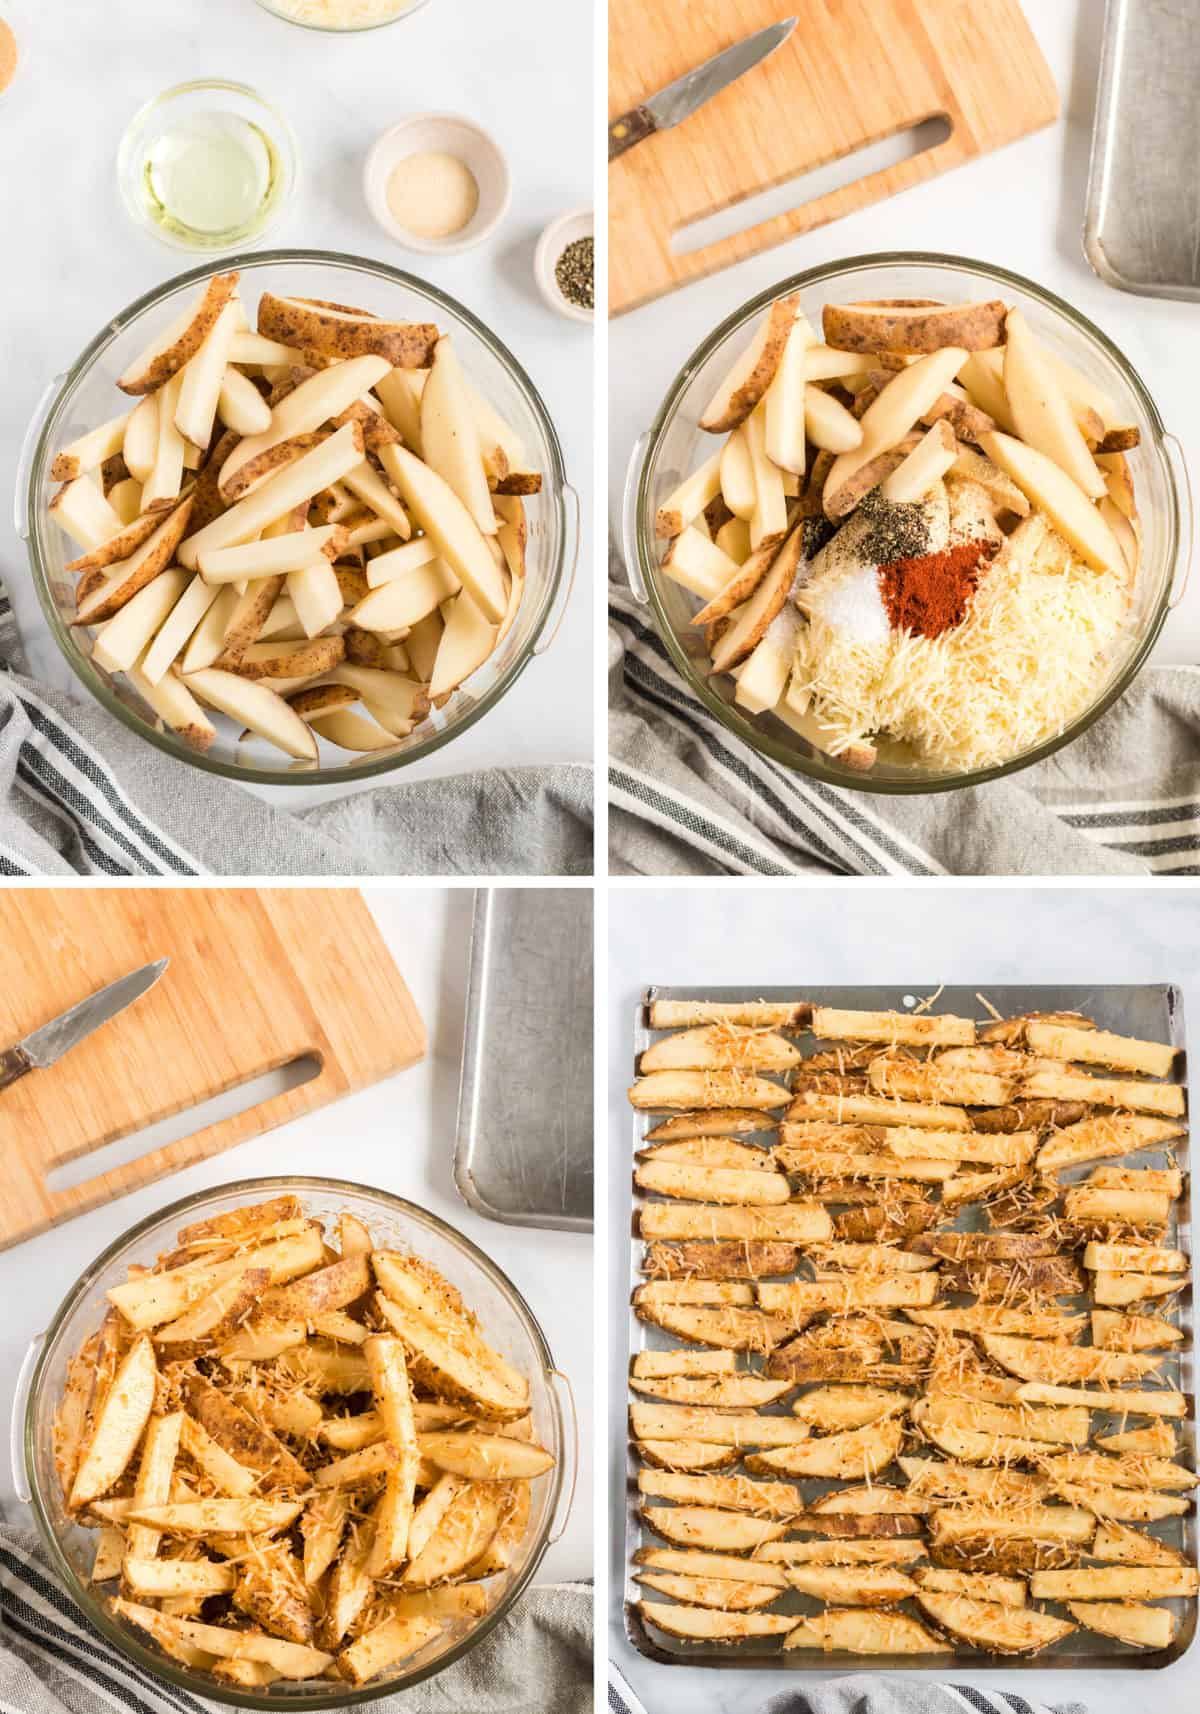 collage image showing the cut up potato wedges, mixed with spices, and on a baking sheet